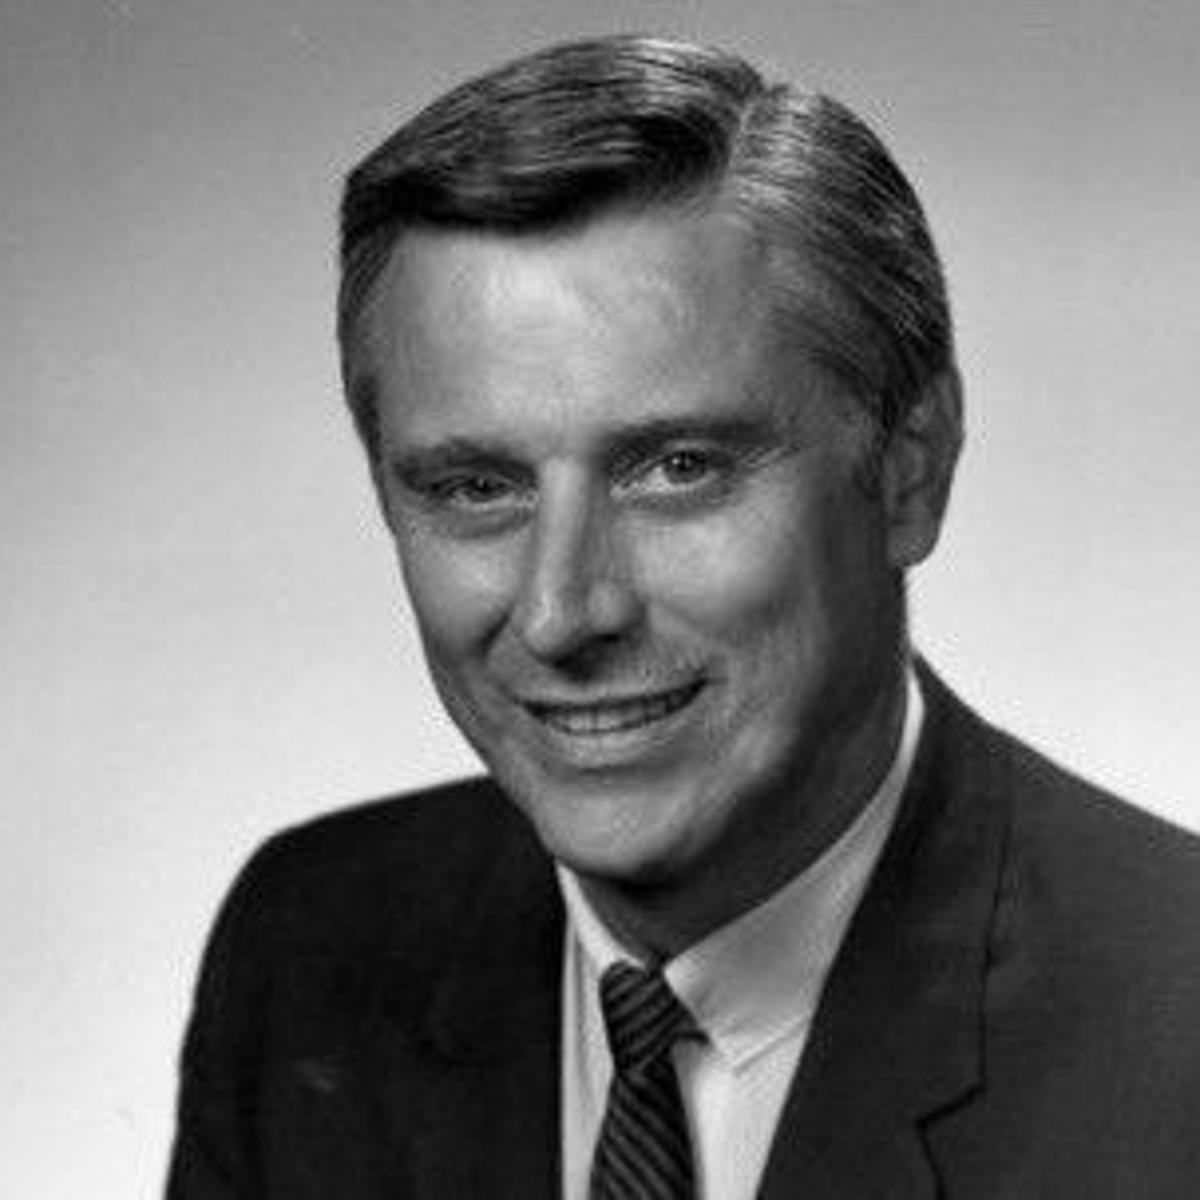 Alec Gifford, former WDSU anchor and news director, has died